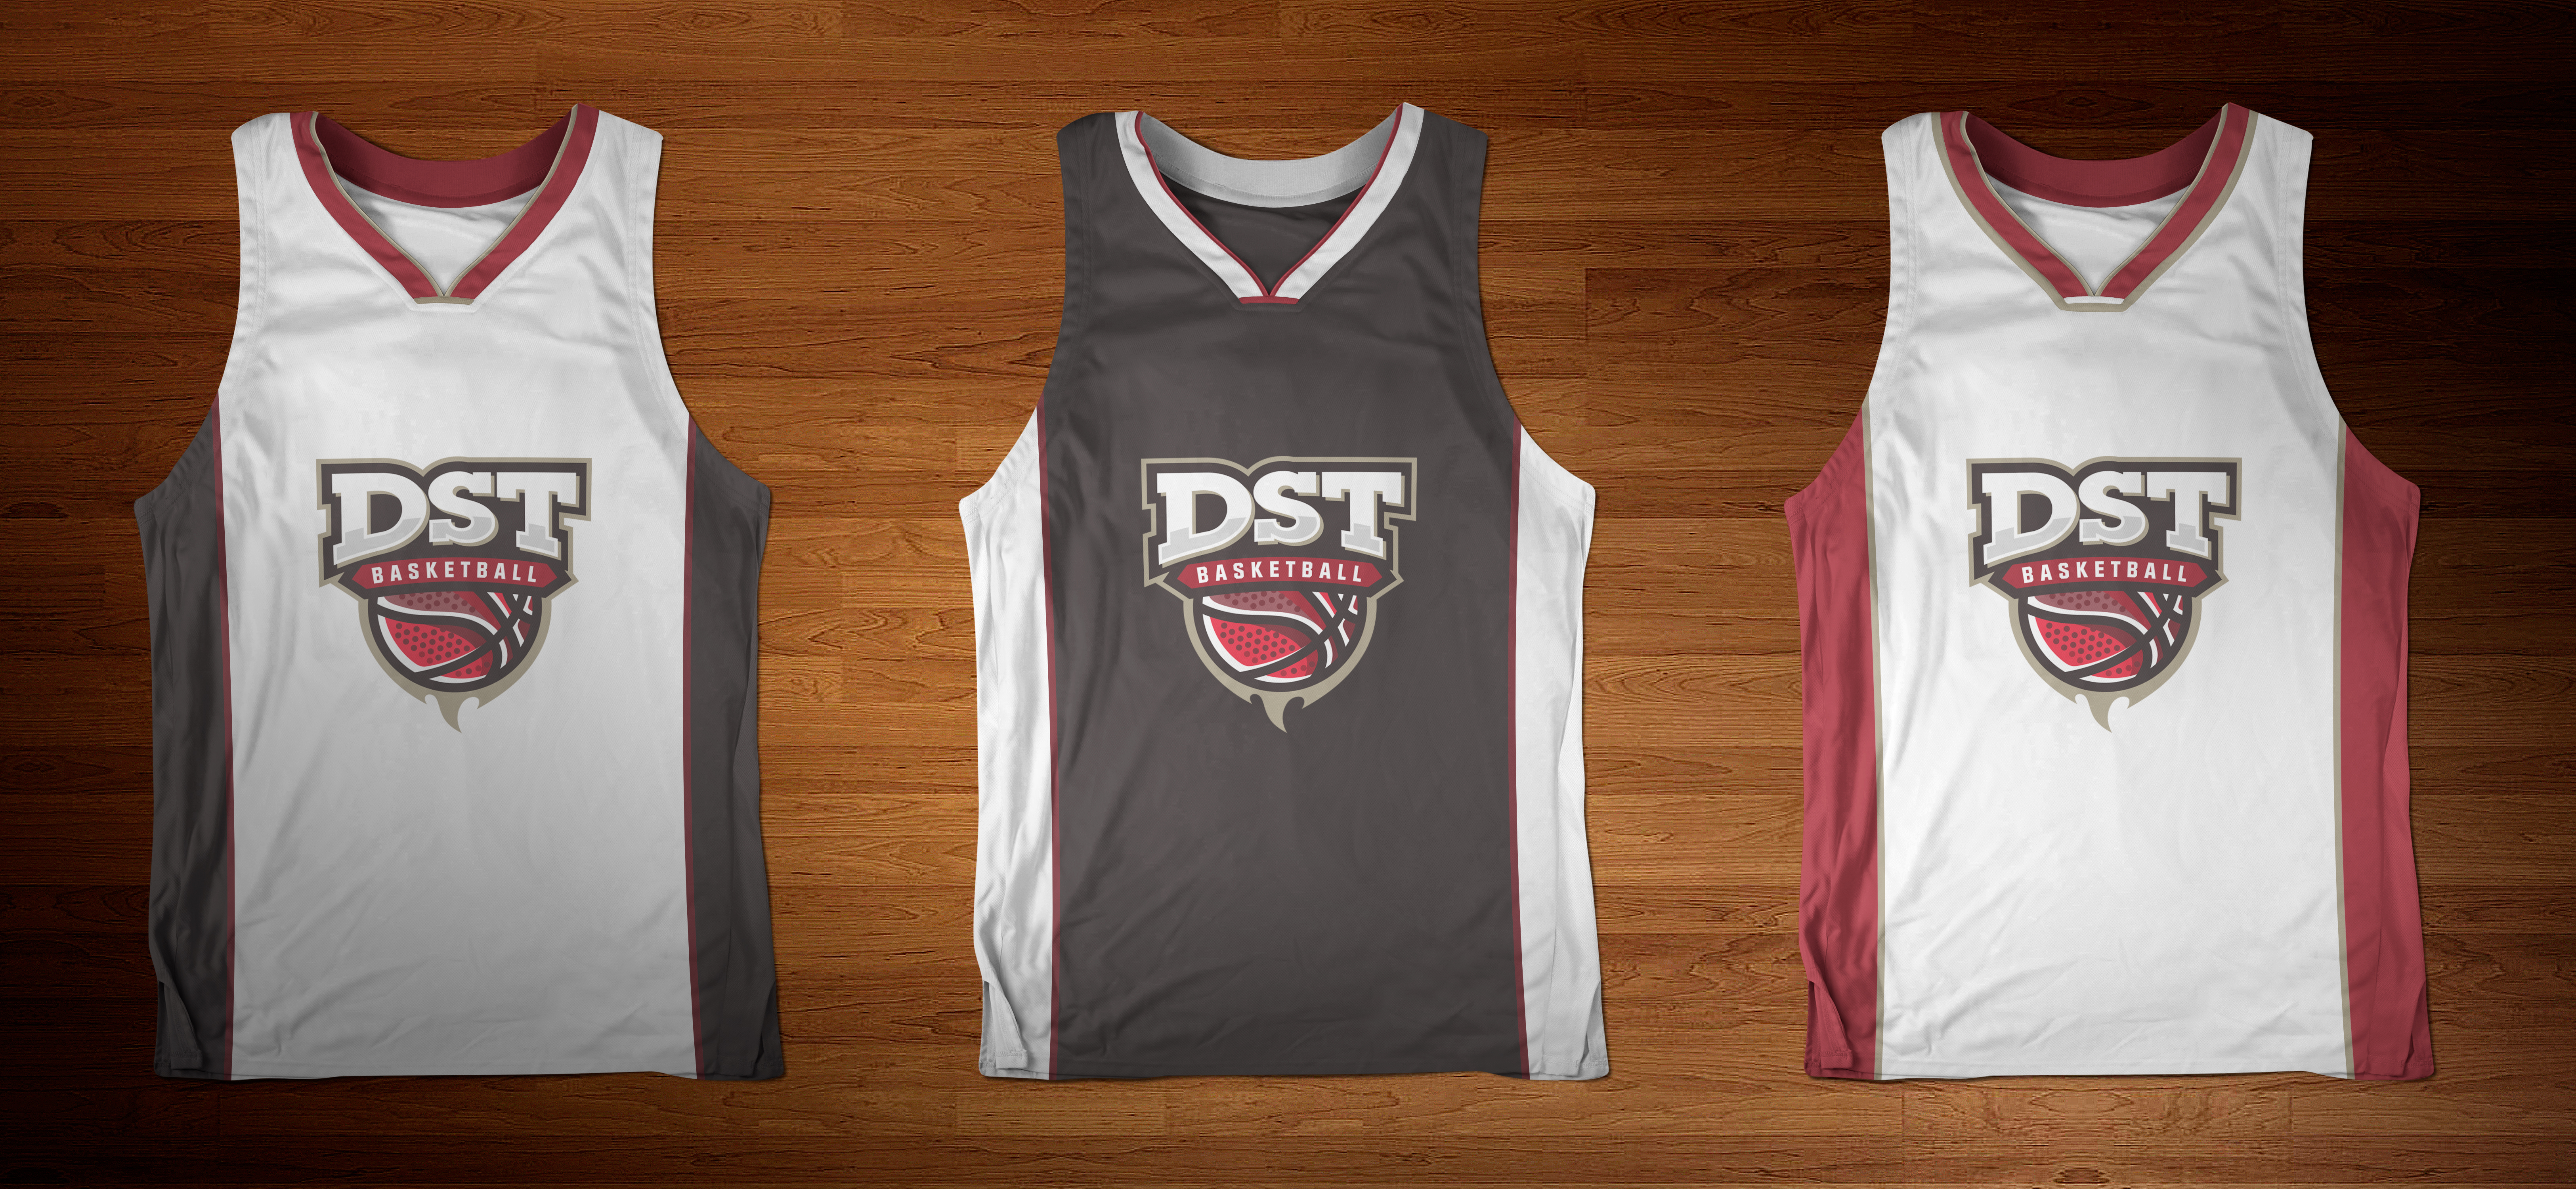 dst-basketball-jerseys